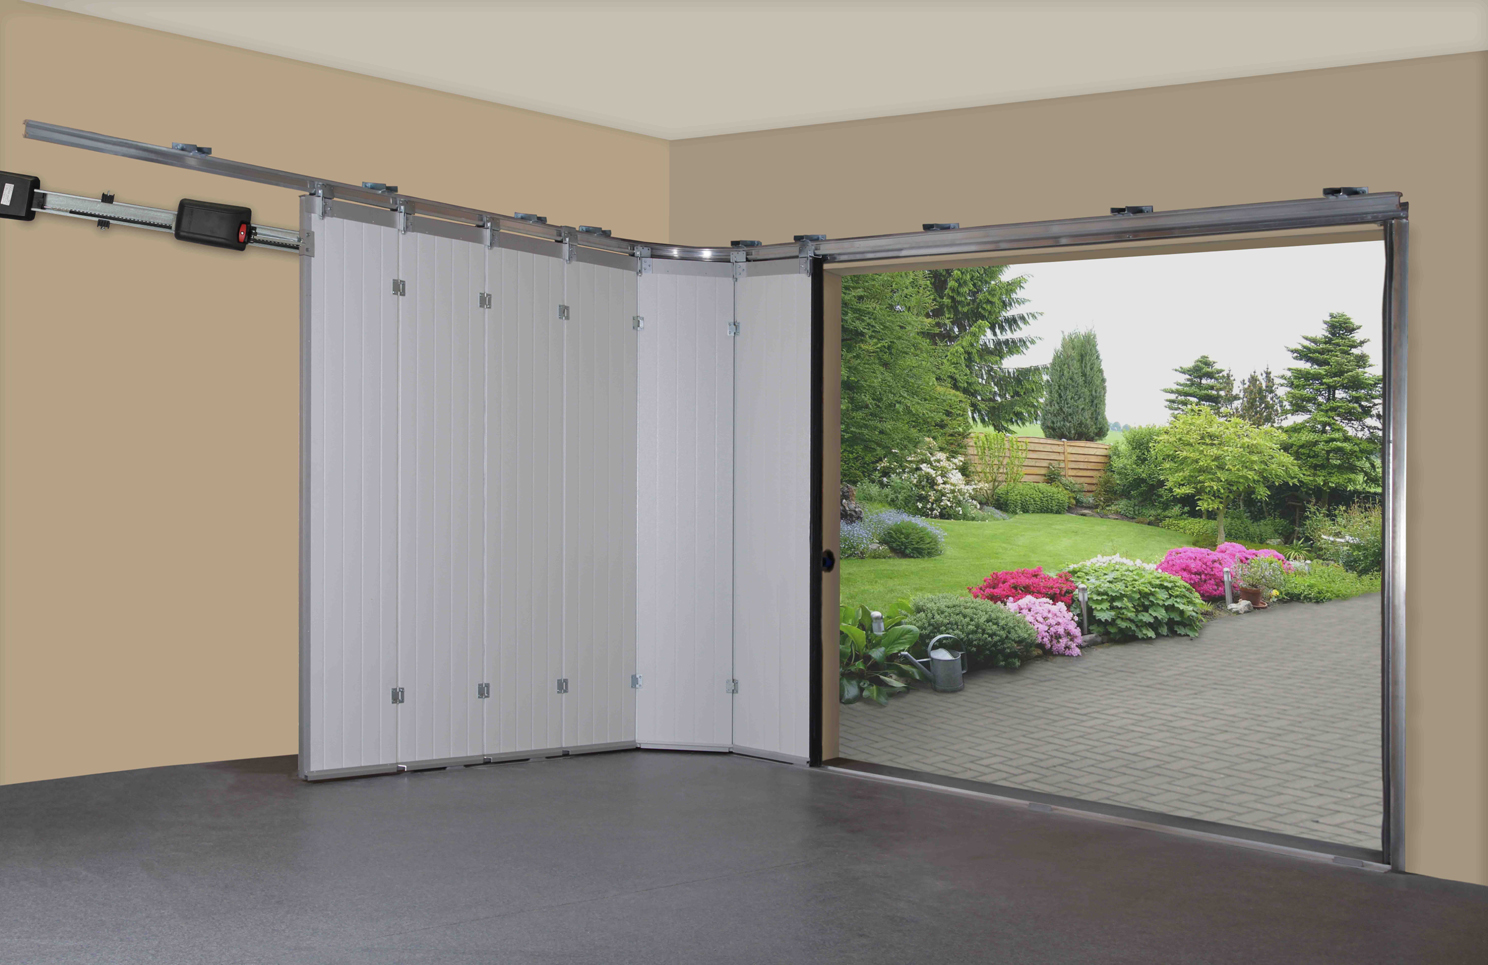 965 #728A41 Side Sliding Doors Ryterna Garage Doors wallpaper Doors And Garage Doors 37151488